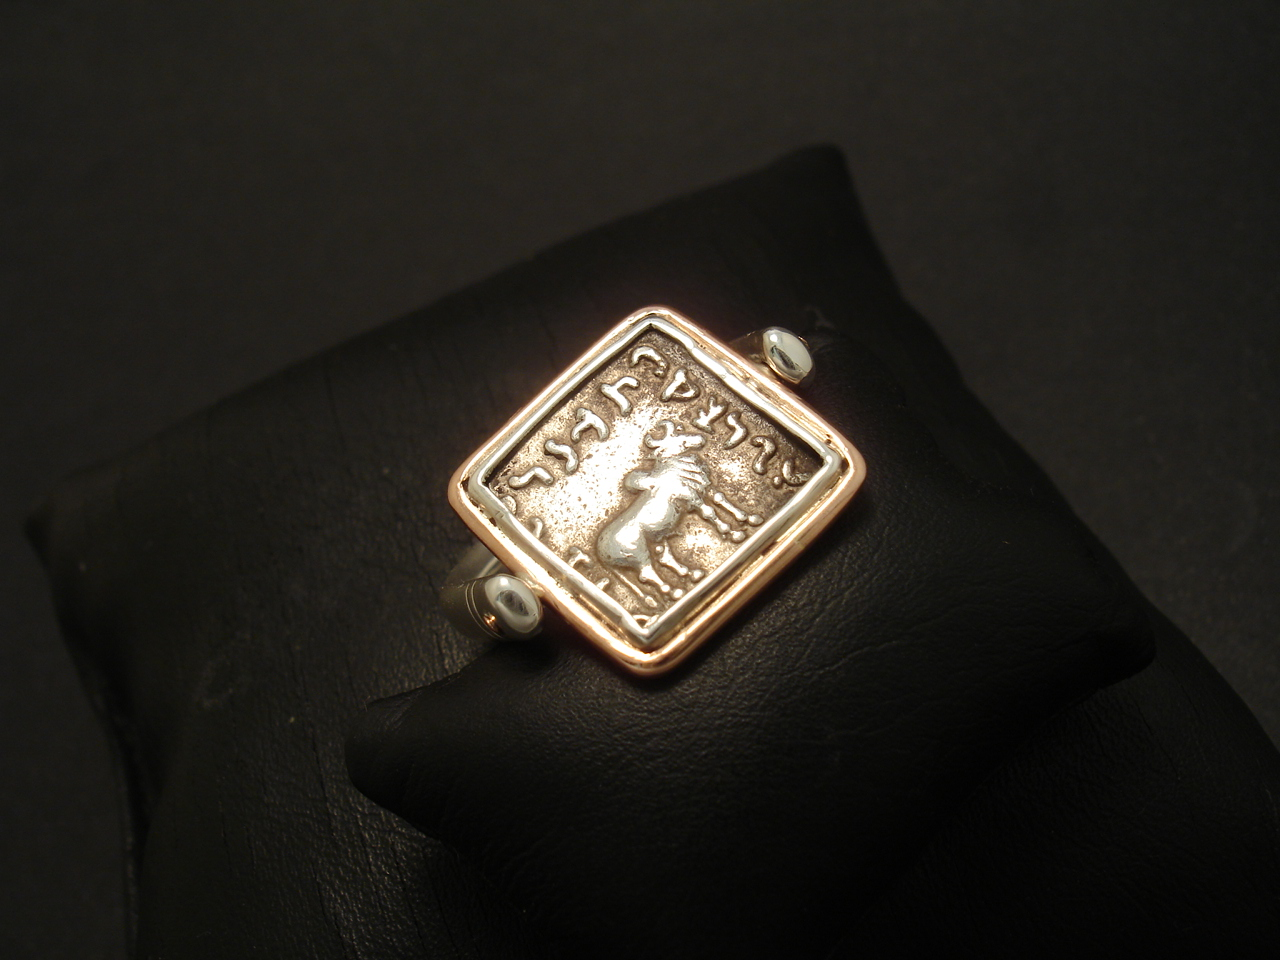 72f642880 Indo-Greek Bactrian Silver Coin, Silver Swivel Ring - Christopher ...